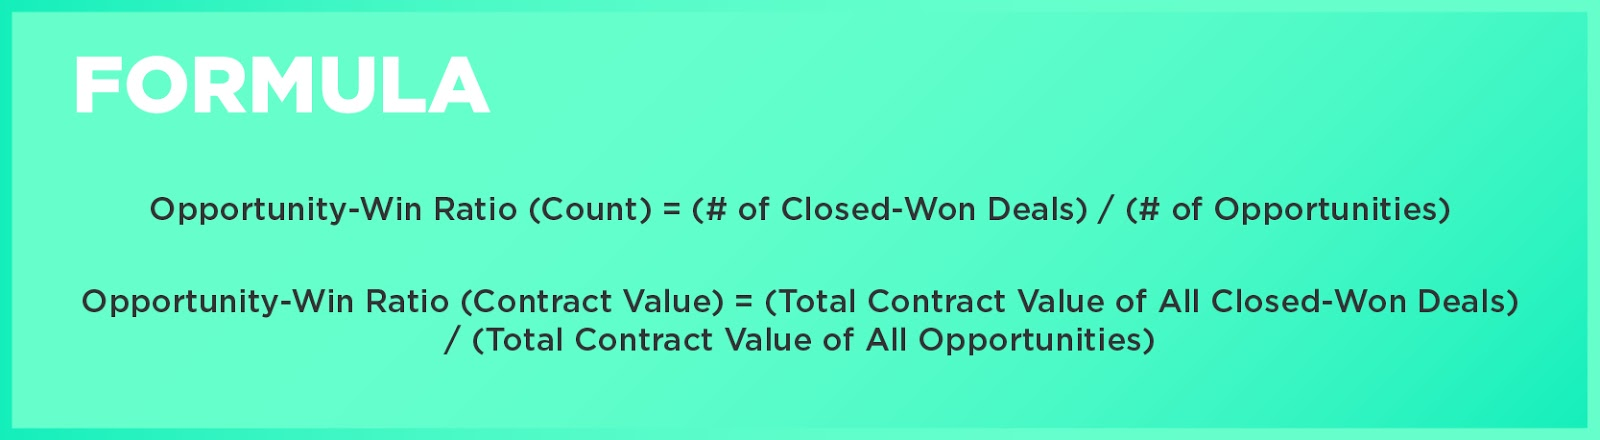 Formula: Opportunity-Win Ratio (Count) = (# of Closed-Won Deals) / (# of Opportunities)Opportunity-Win Ratio (Contract Value) = (Total Contract Value of All Closed-Won Deals) / (Total Contract Value of All Opportunities)